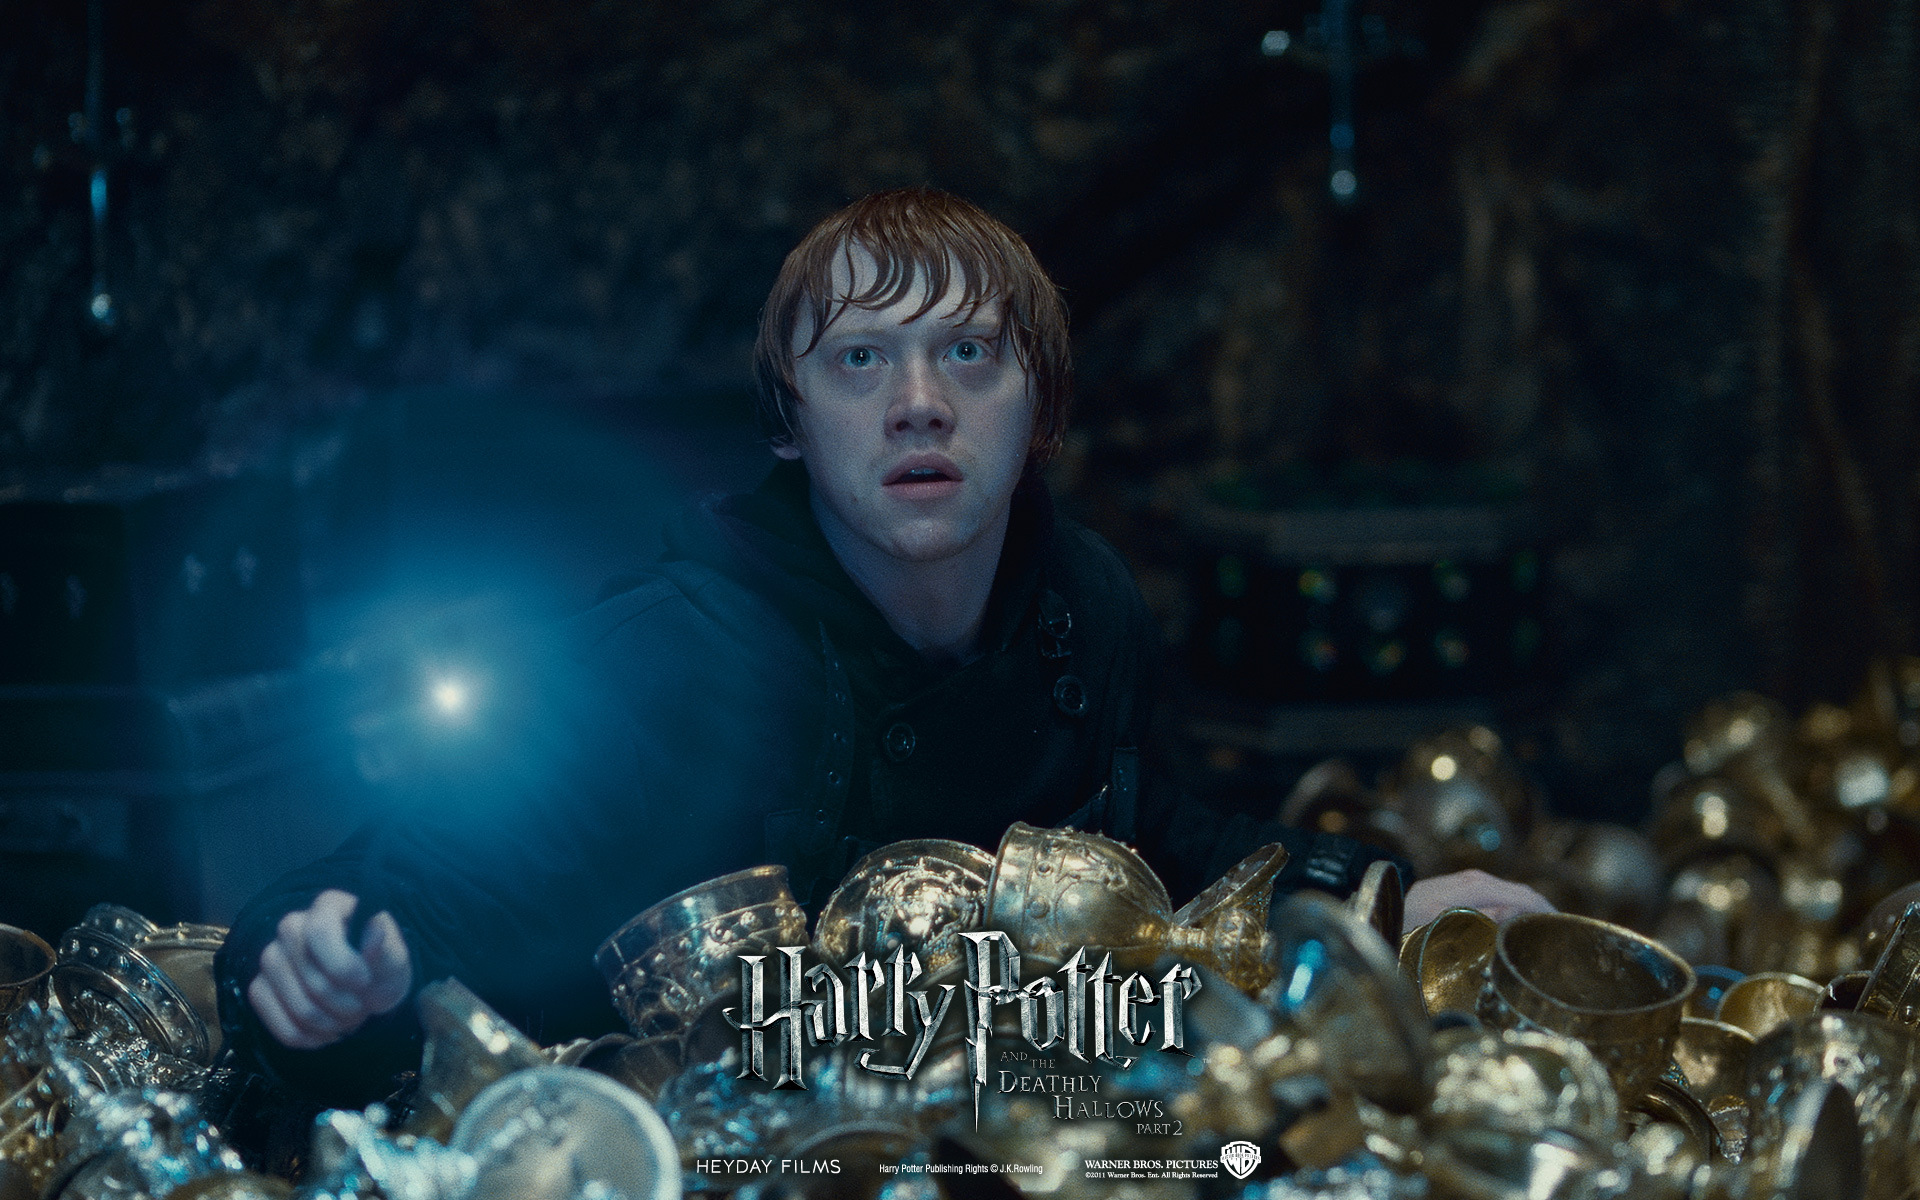 harry potter deathly hallows parents guide